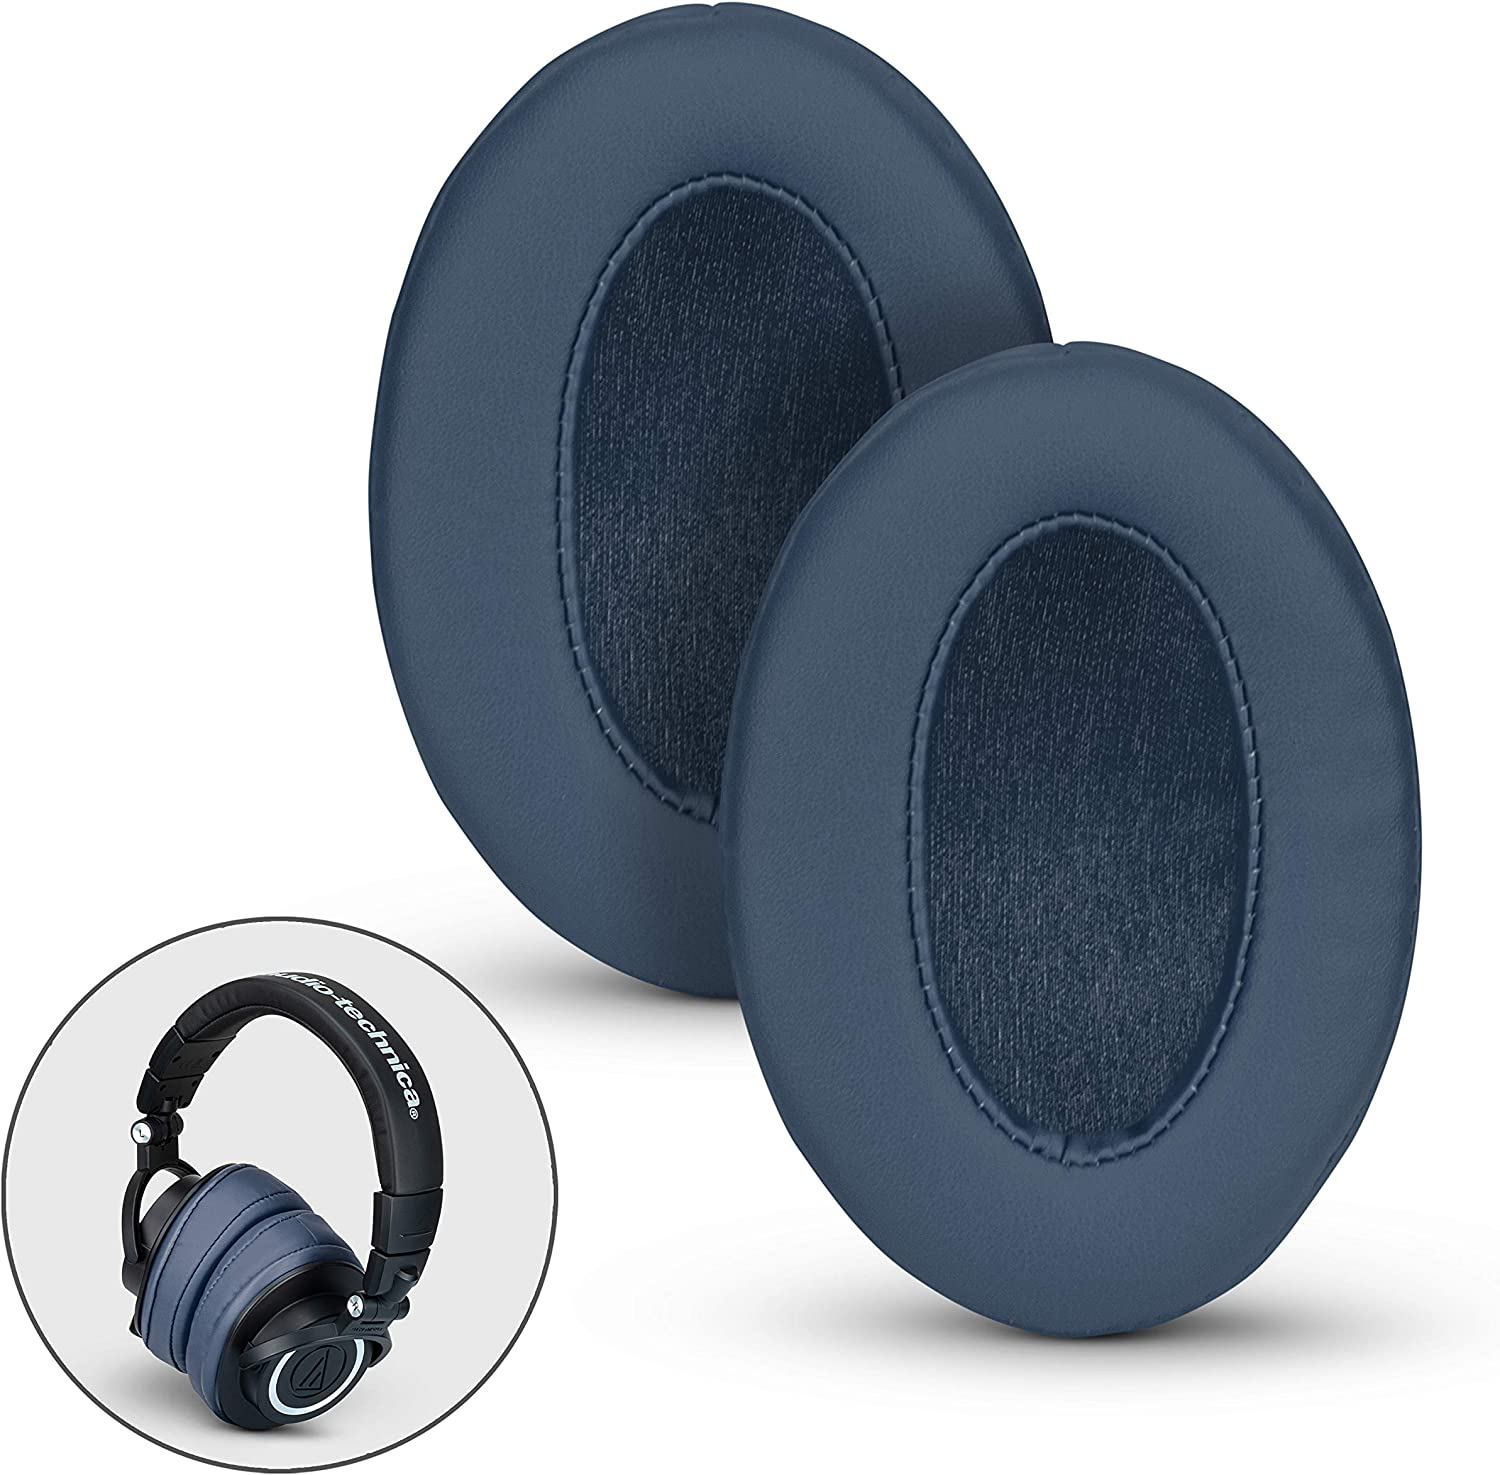 Pro Black See List HyperX JBL M30X AKG BRAINWAVZ Angled Ear Pads for ATH M50X M50XBT Fostex Replacement Memory Foam Earpads /& Fits Many Headphones SHURE M40X Philips Turtle Beach ATH